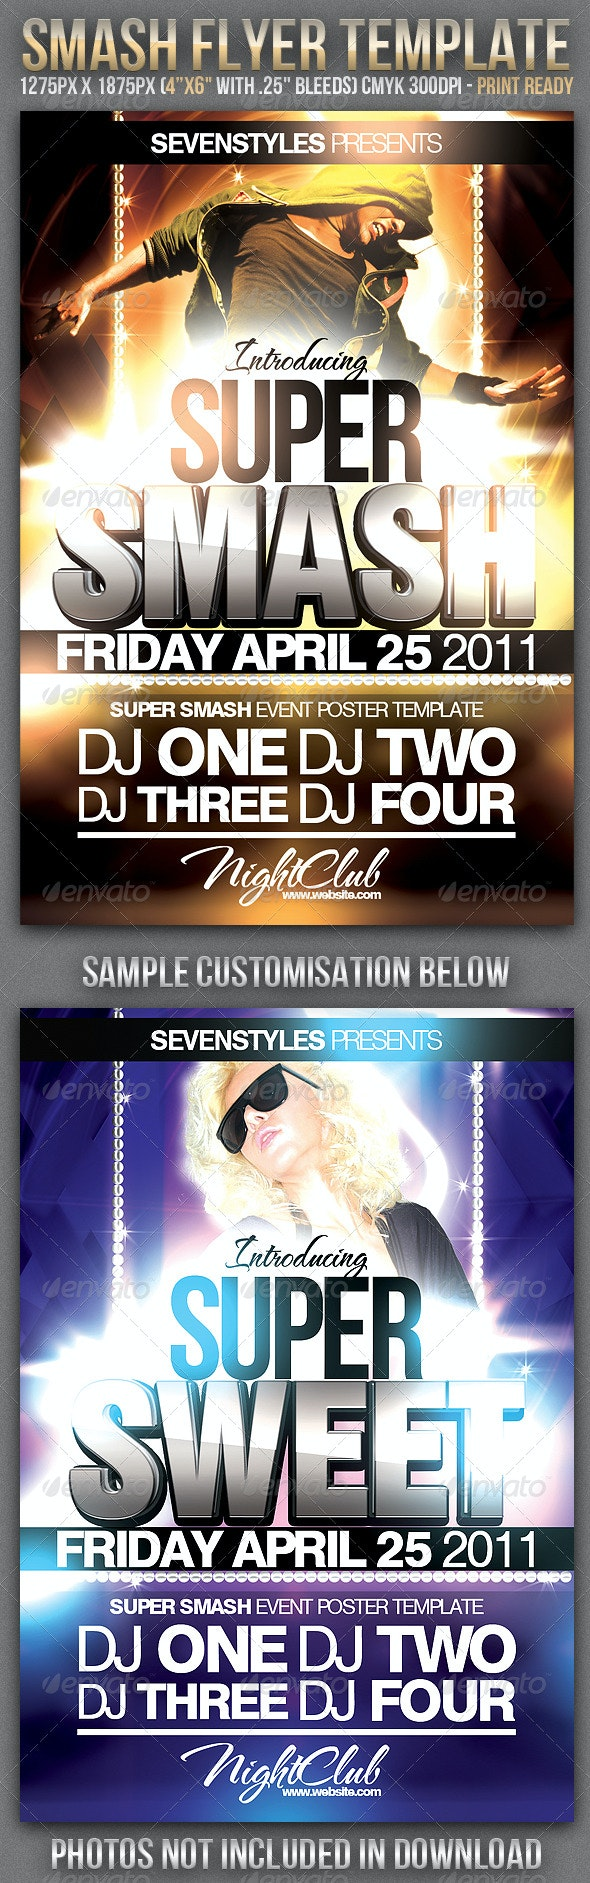 Smash Flyer Template - Clubs & Parties Events